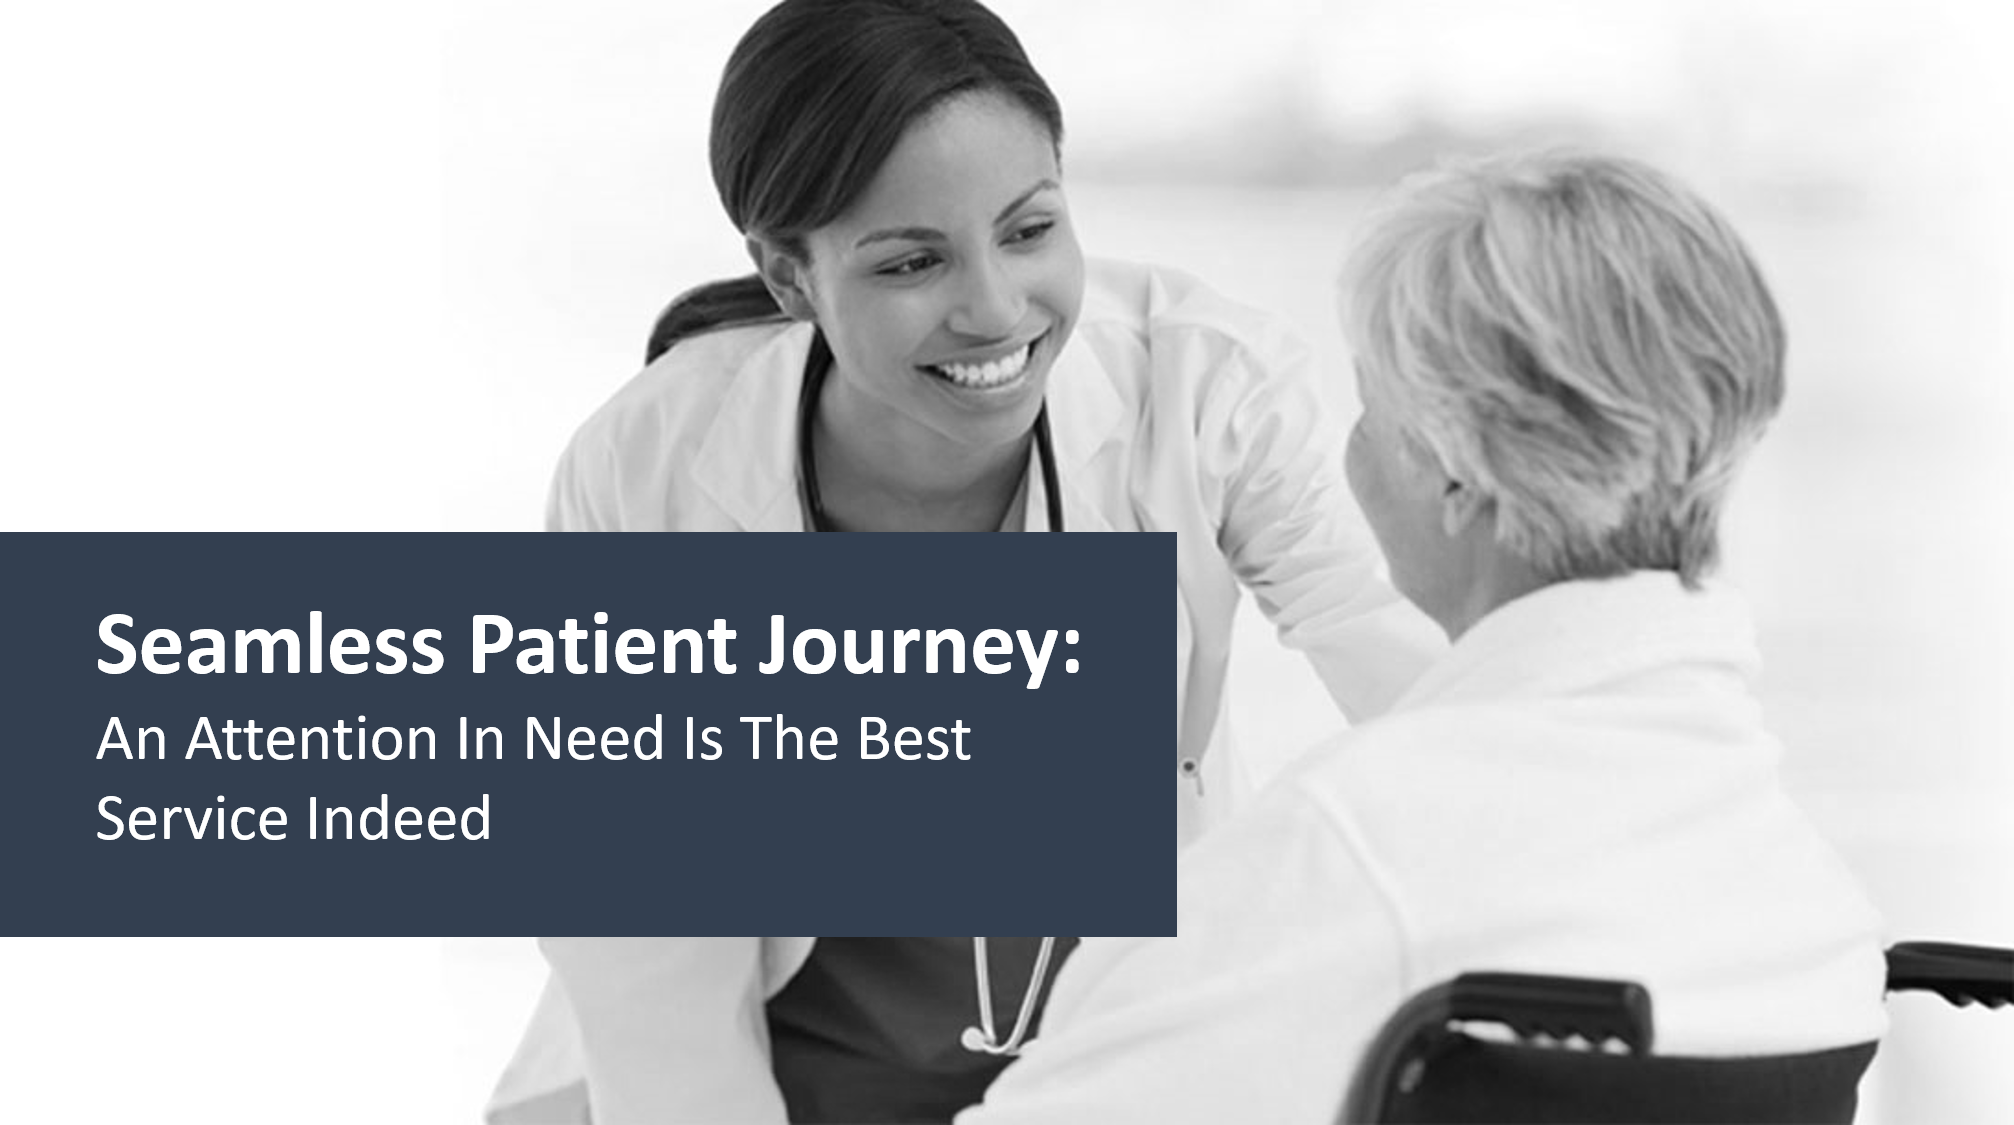 seamless patient journey